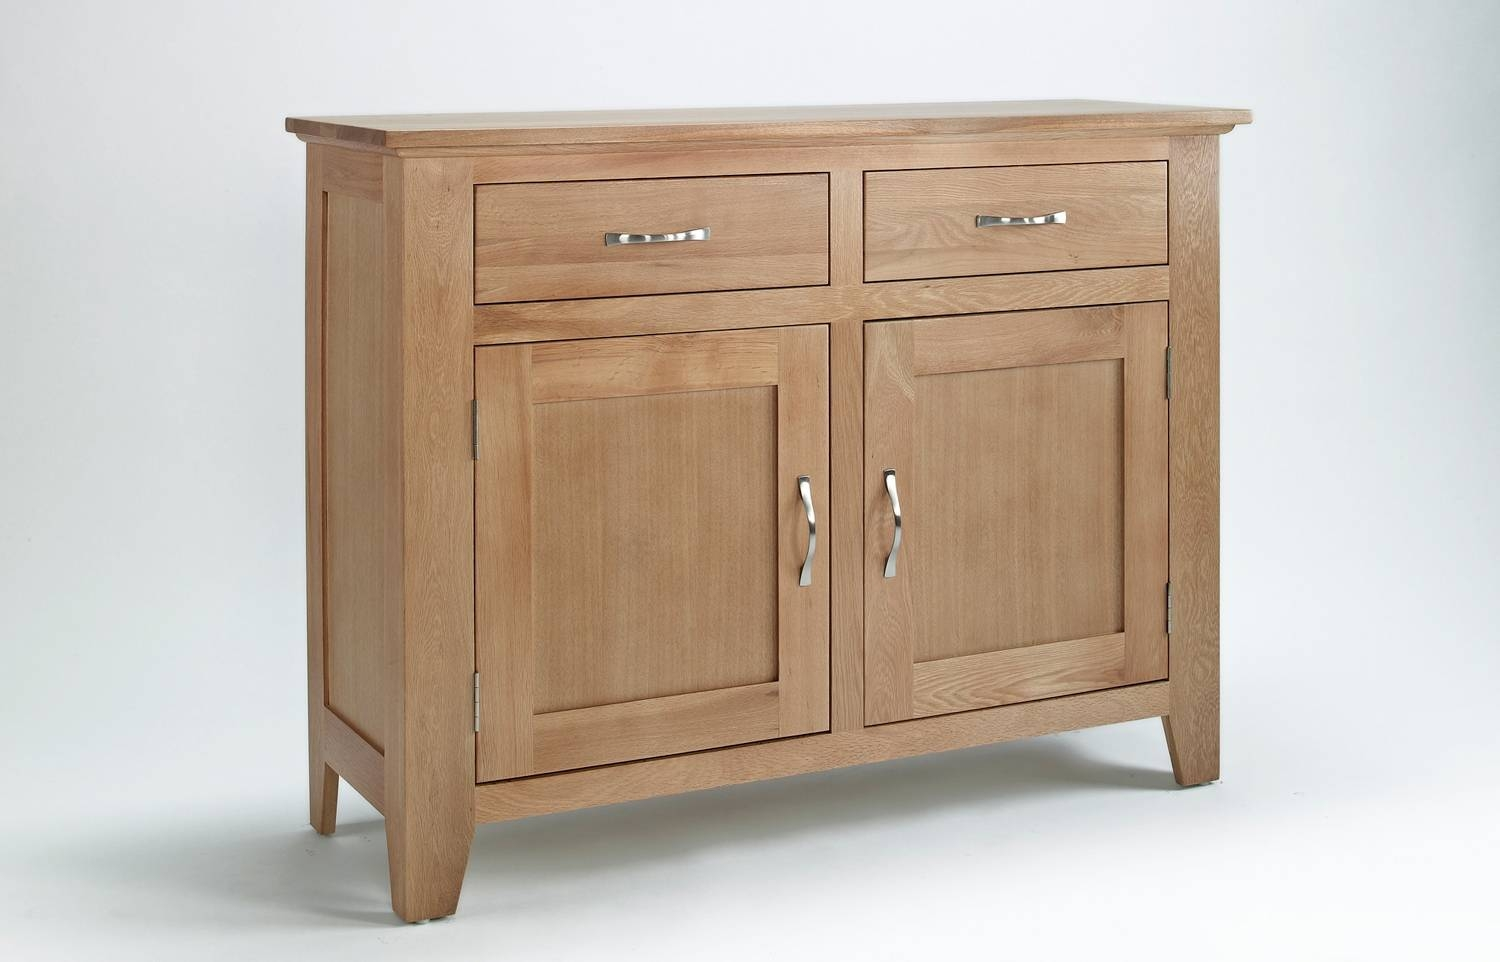 Sherwood Oak Sideboard With 2 Doors & 2 Drawers throughout 2 Door Sideboards (Image 10 of 15)